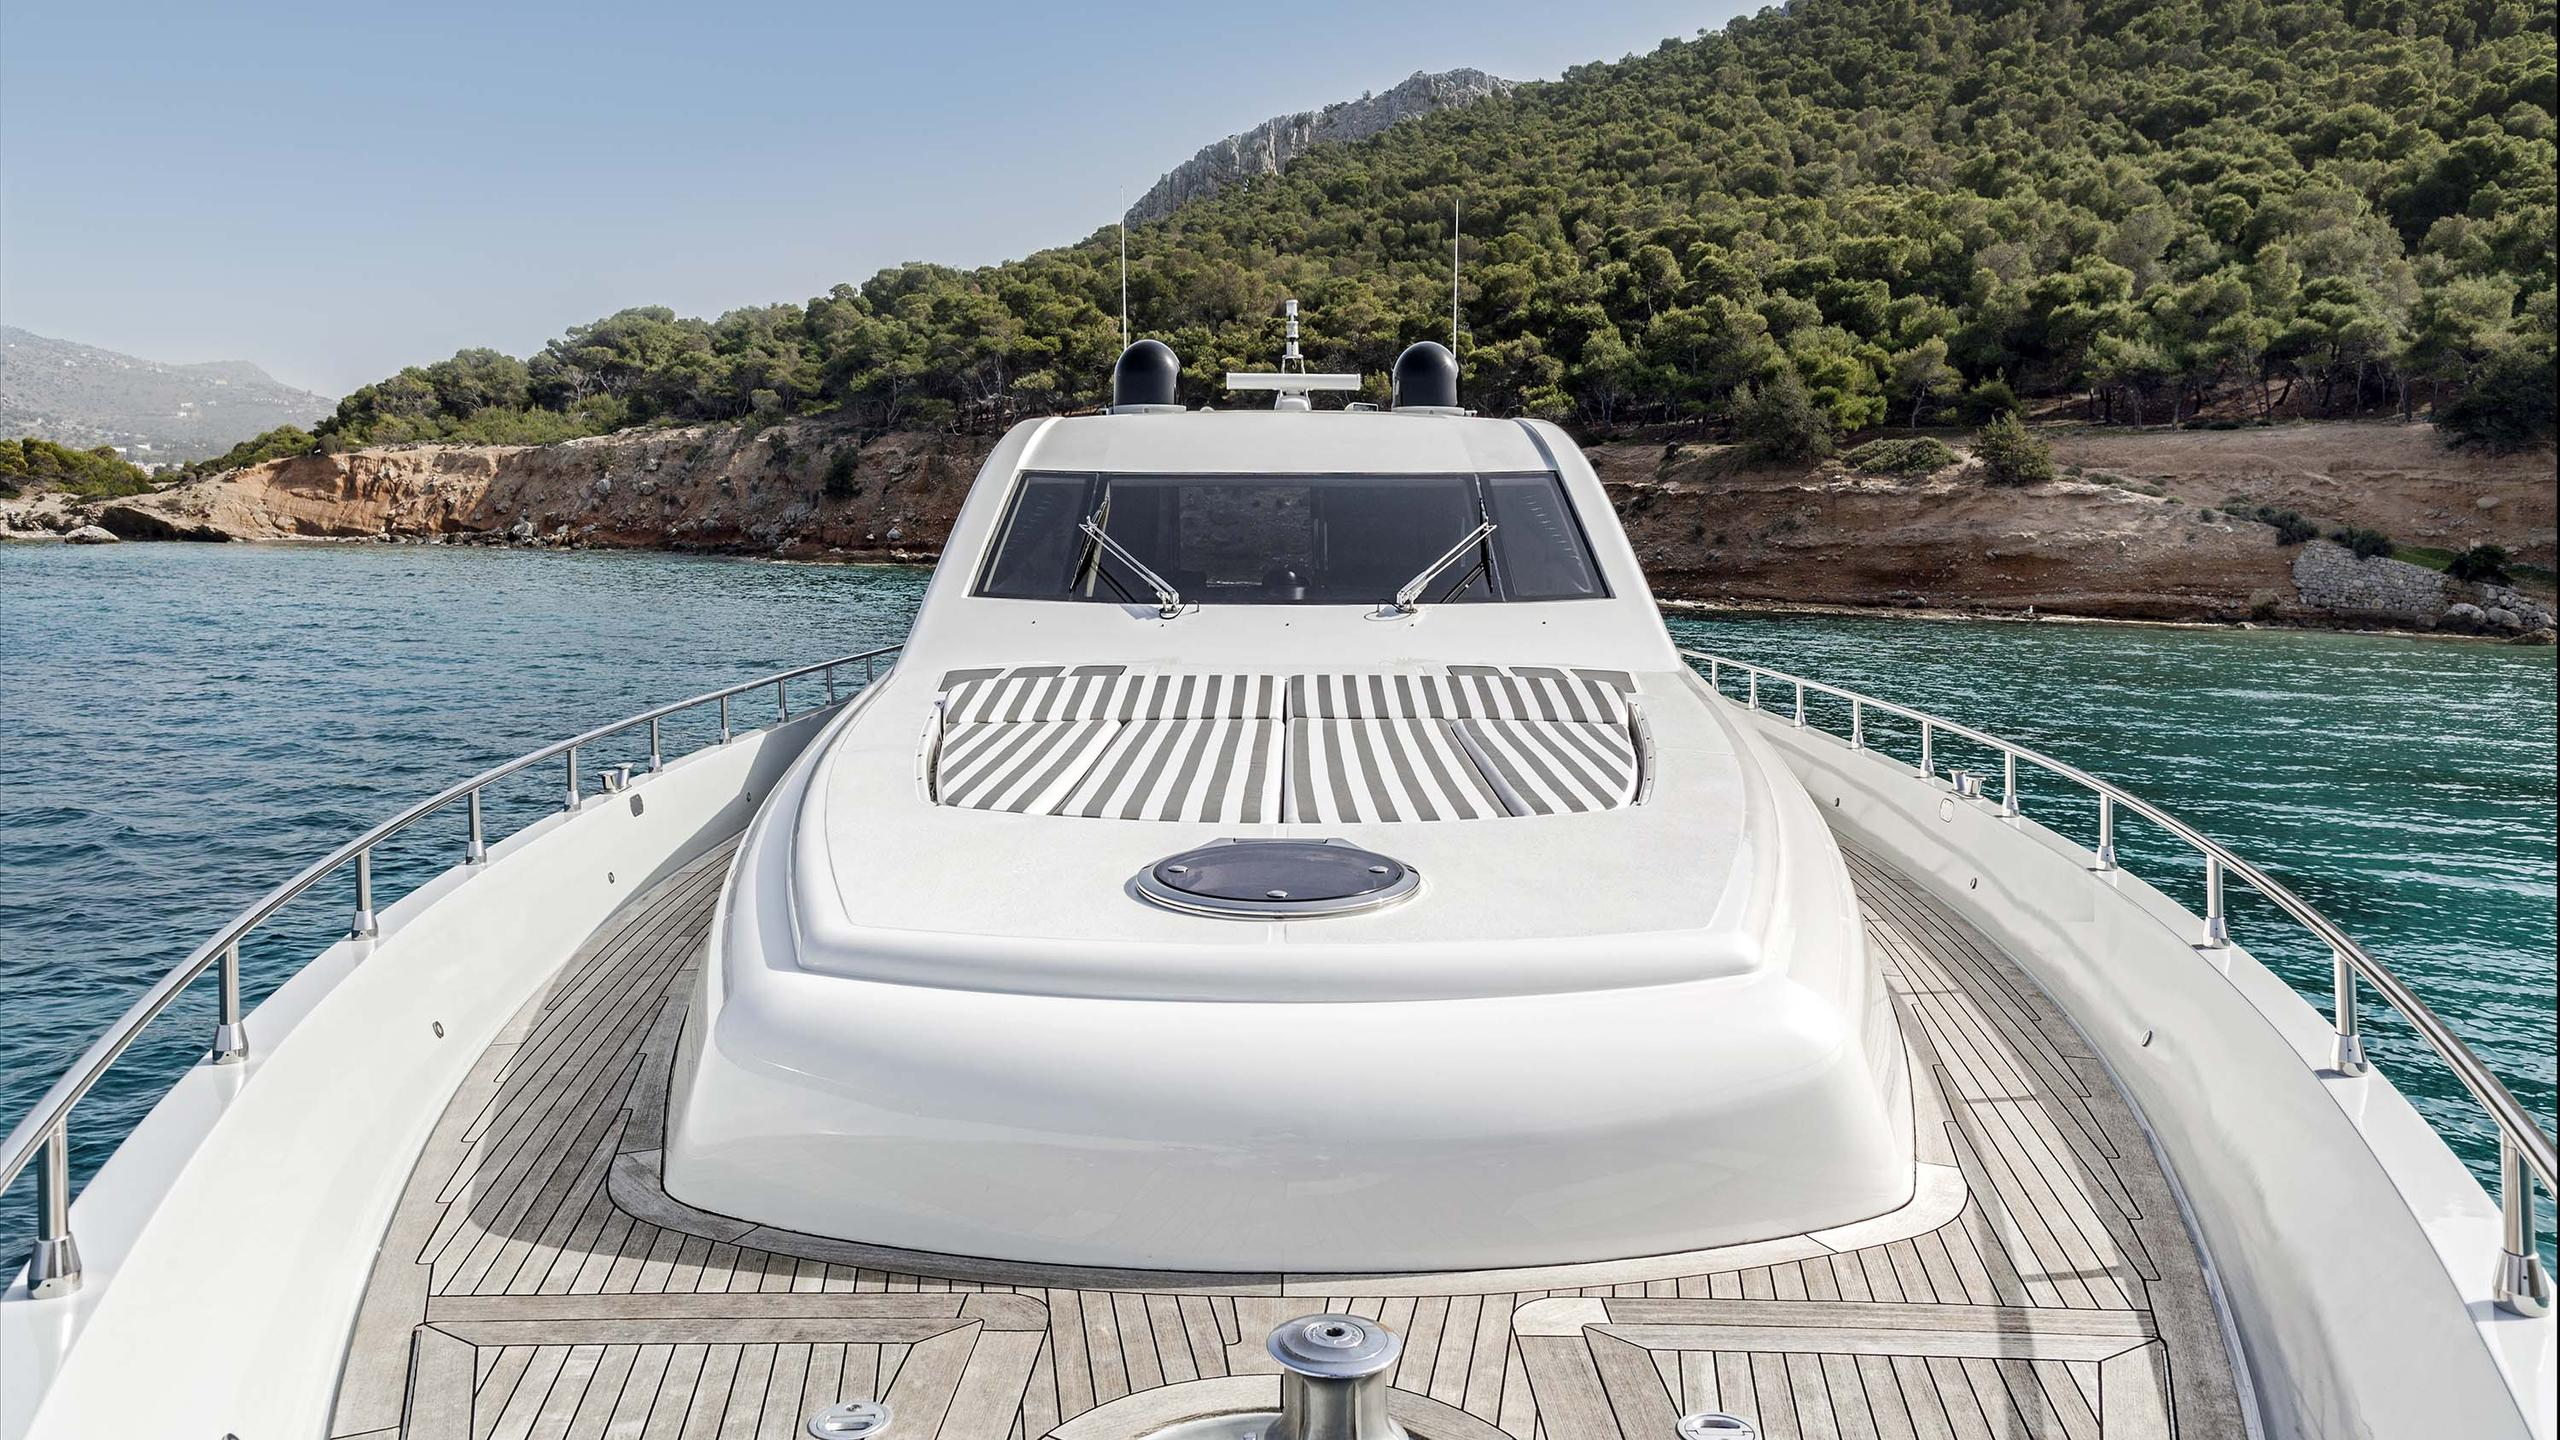 Rena motor yacht for charter